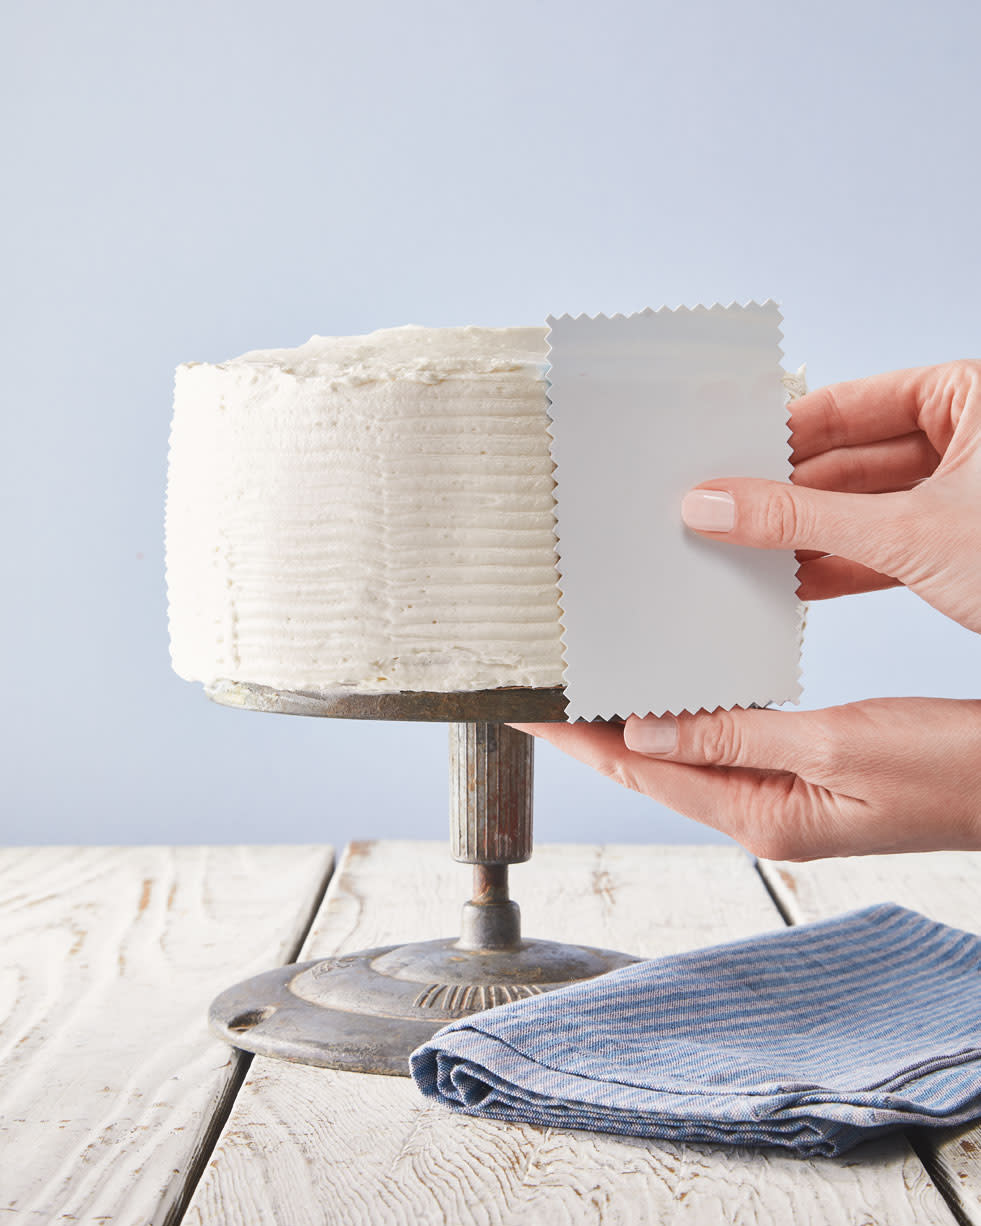 An Easy, Minimalist Way to Decorate a Cake